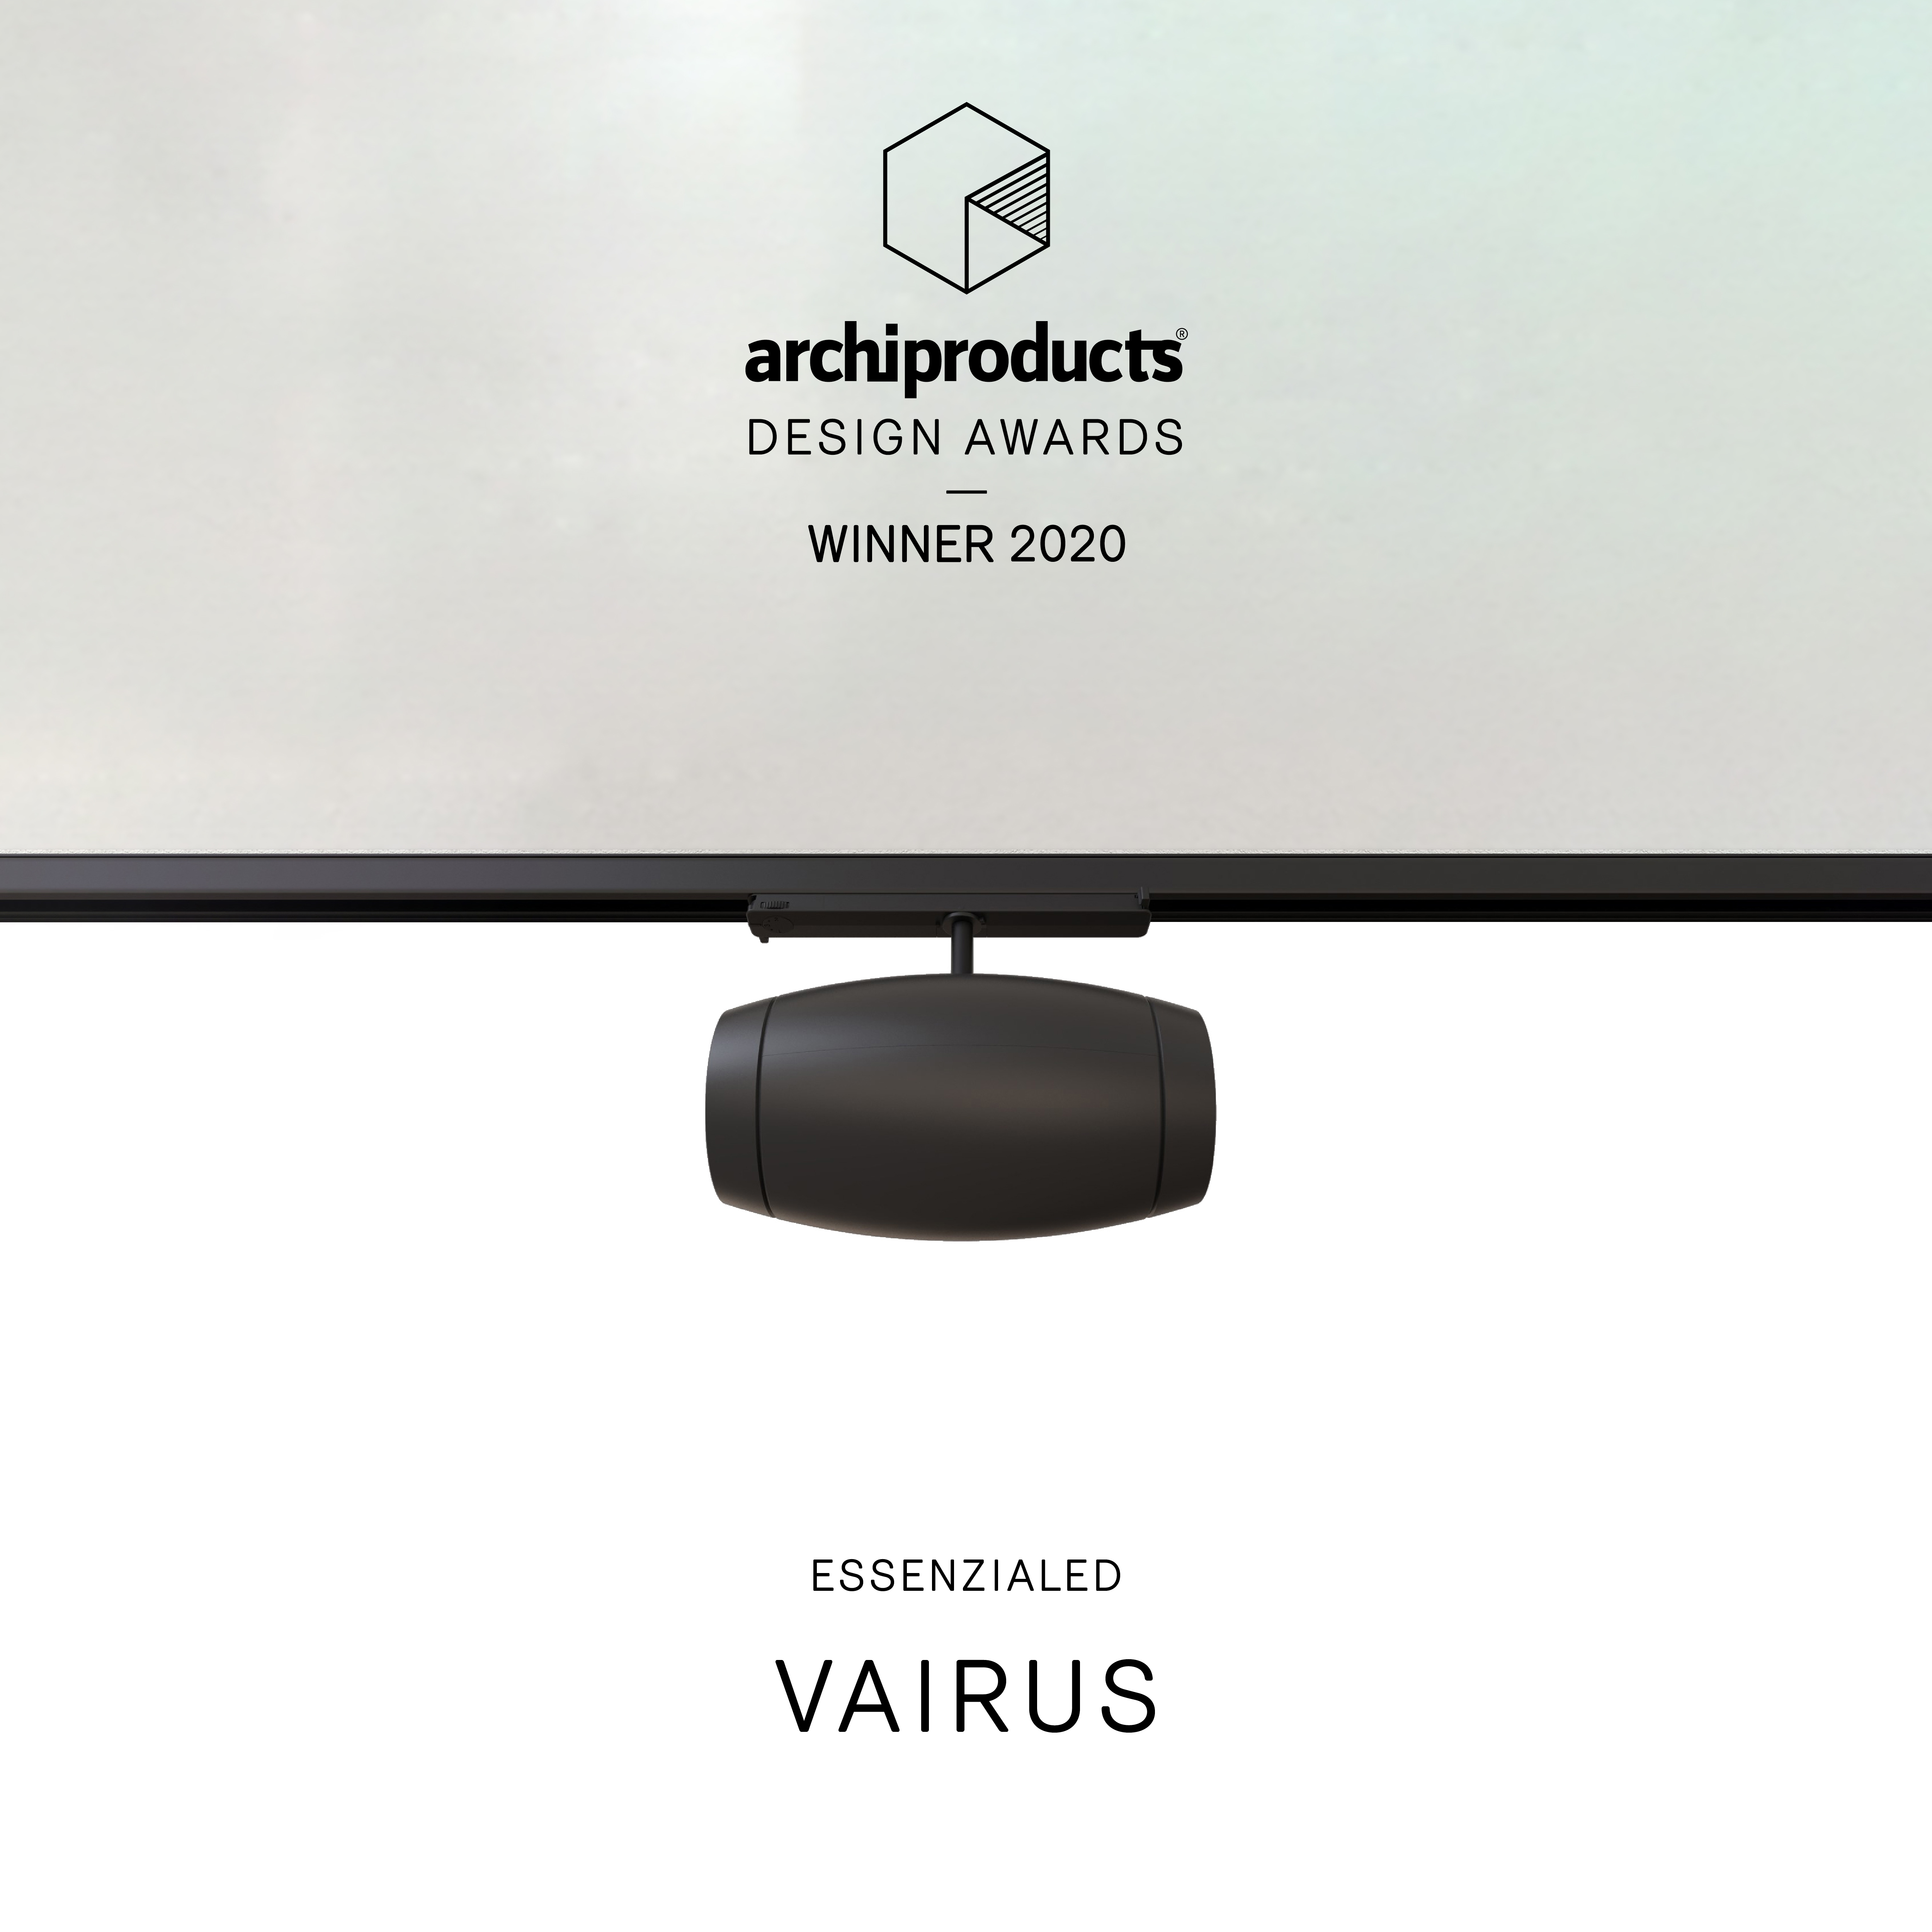 Vairus Air purifier Winner of the 2020 Archiproducts Design Awards